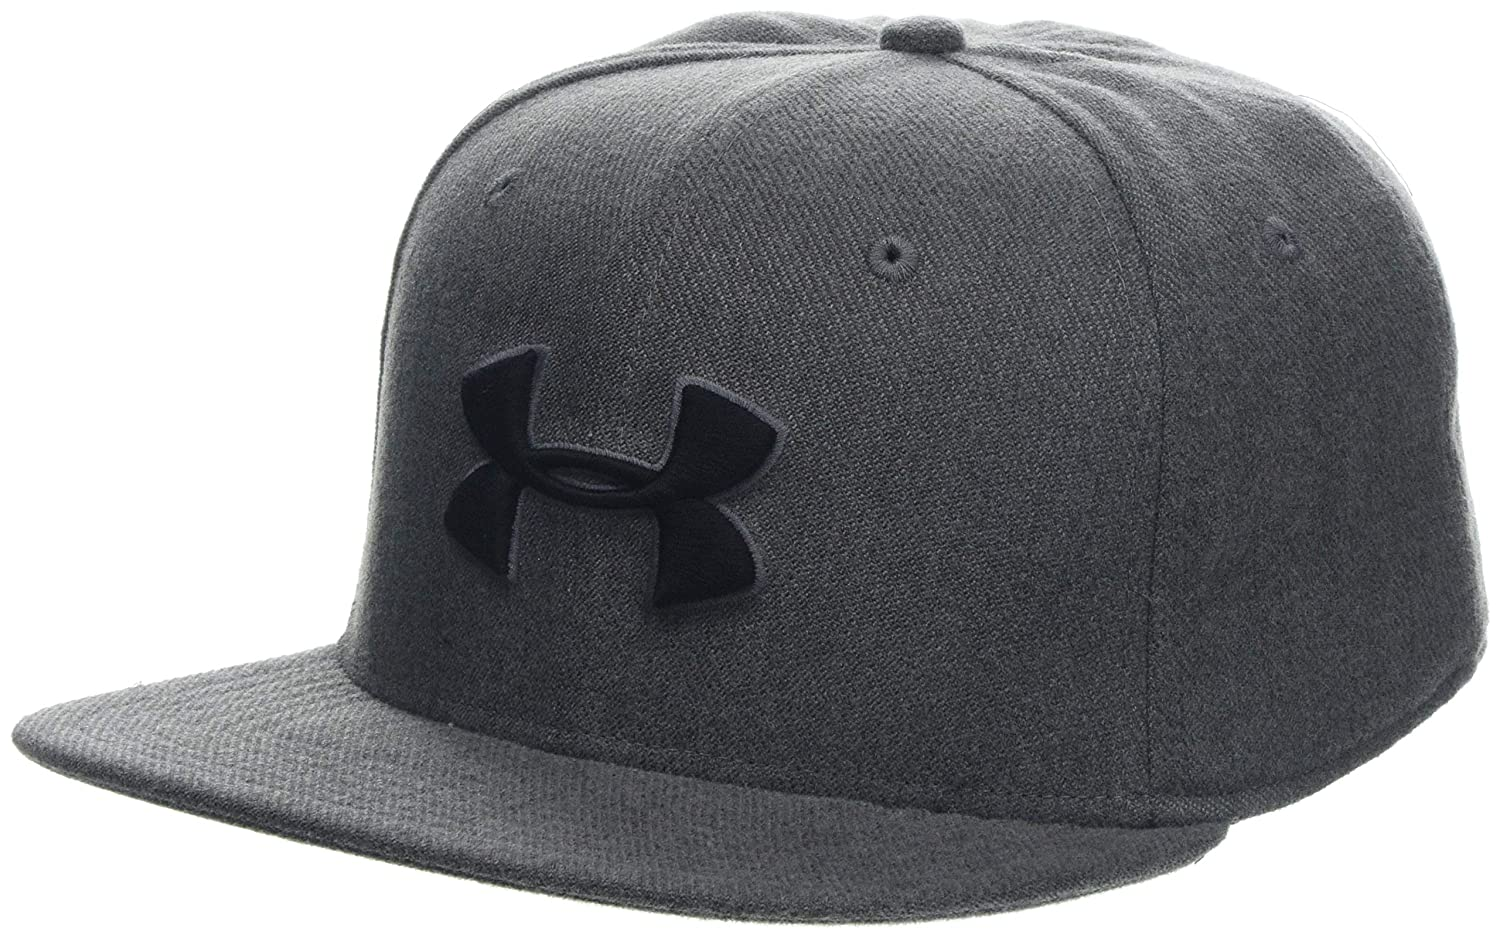 new product f0697 a1ead Under Armour Men s Huddle Snapback 2.0 Cap, Graphite Academy (408), OSFA   Amazon.co.uk  Sports   Outdoors